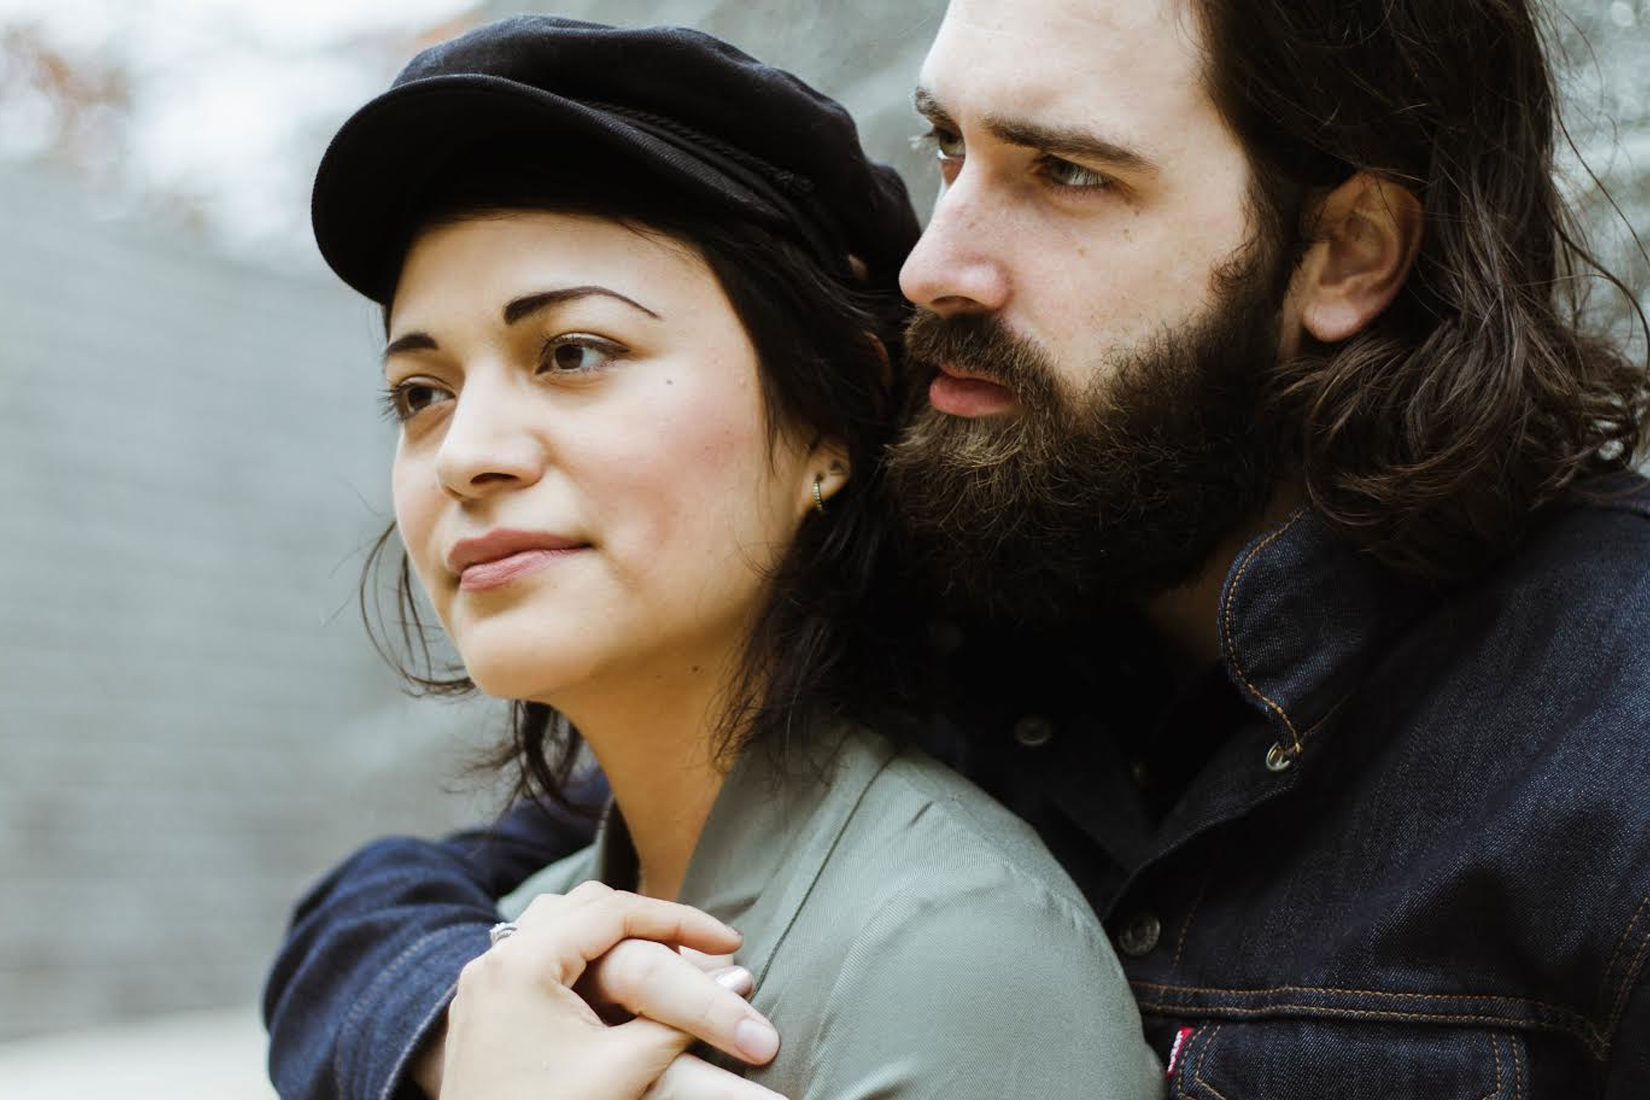 Guest Blog 5 Rules For Dating With a Beard